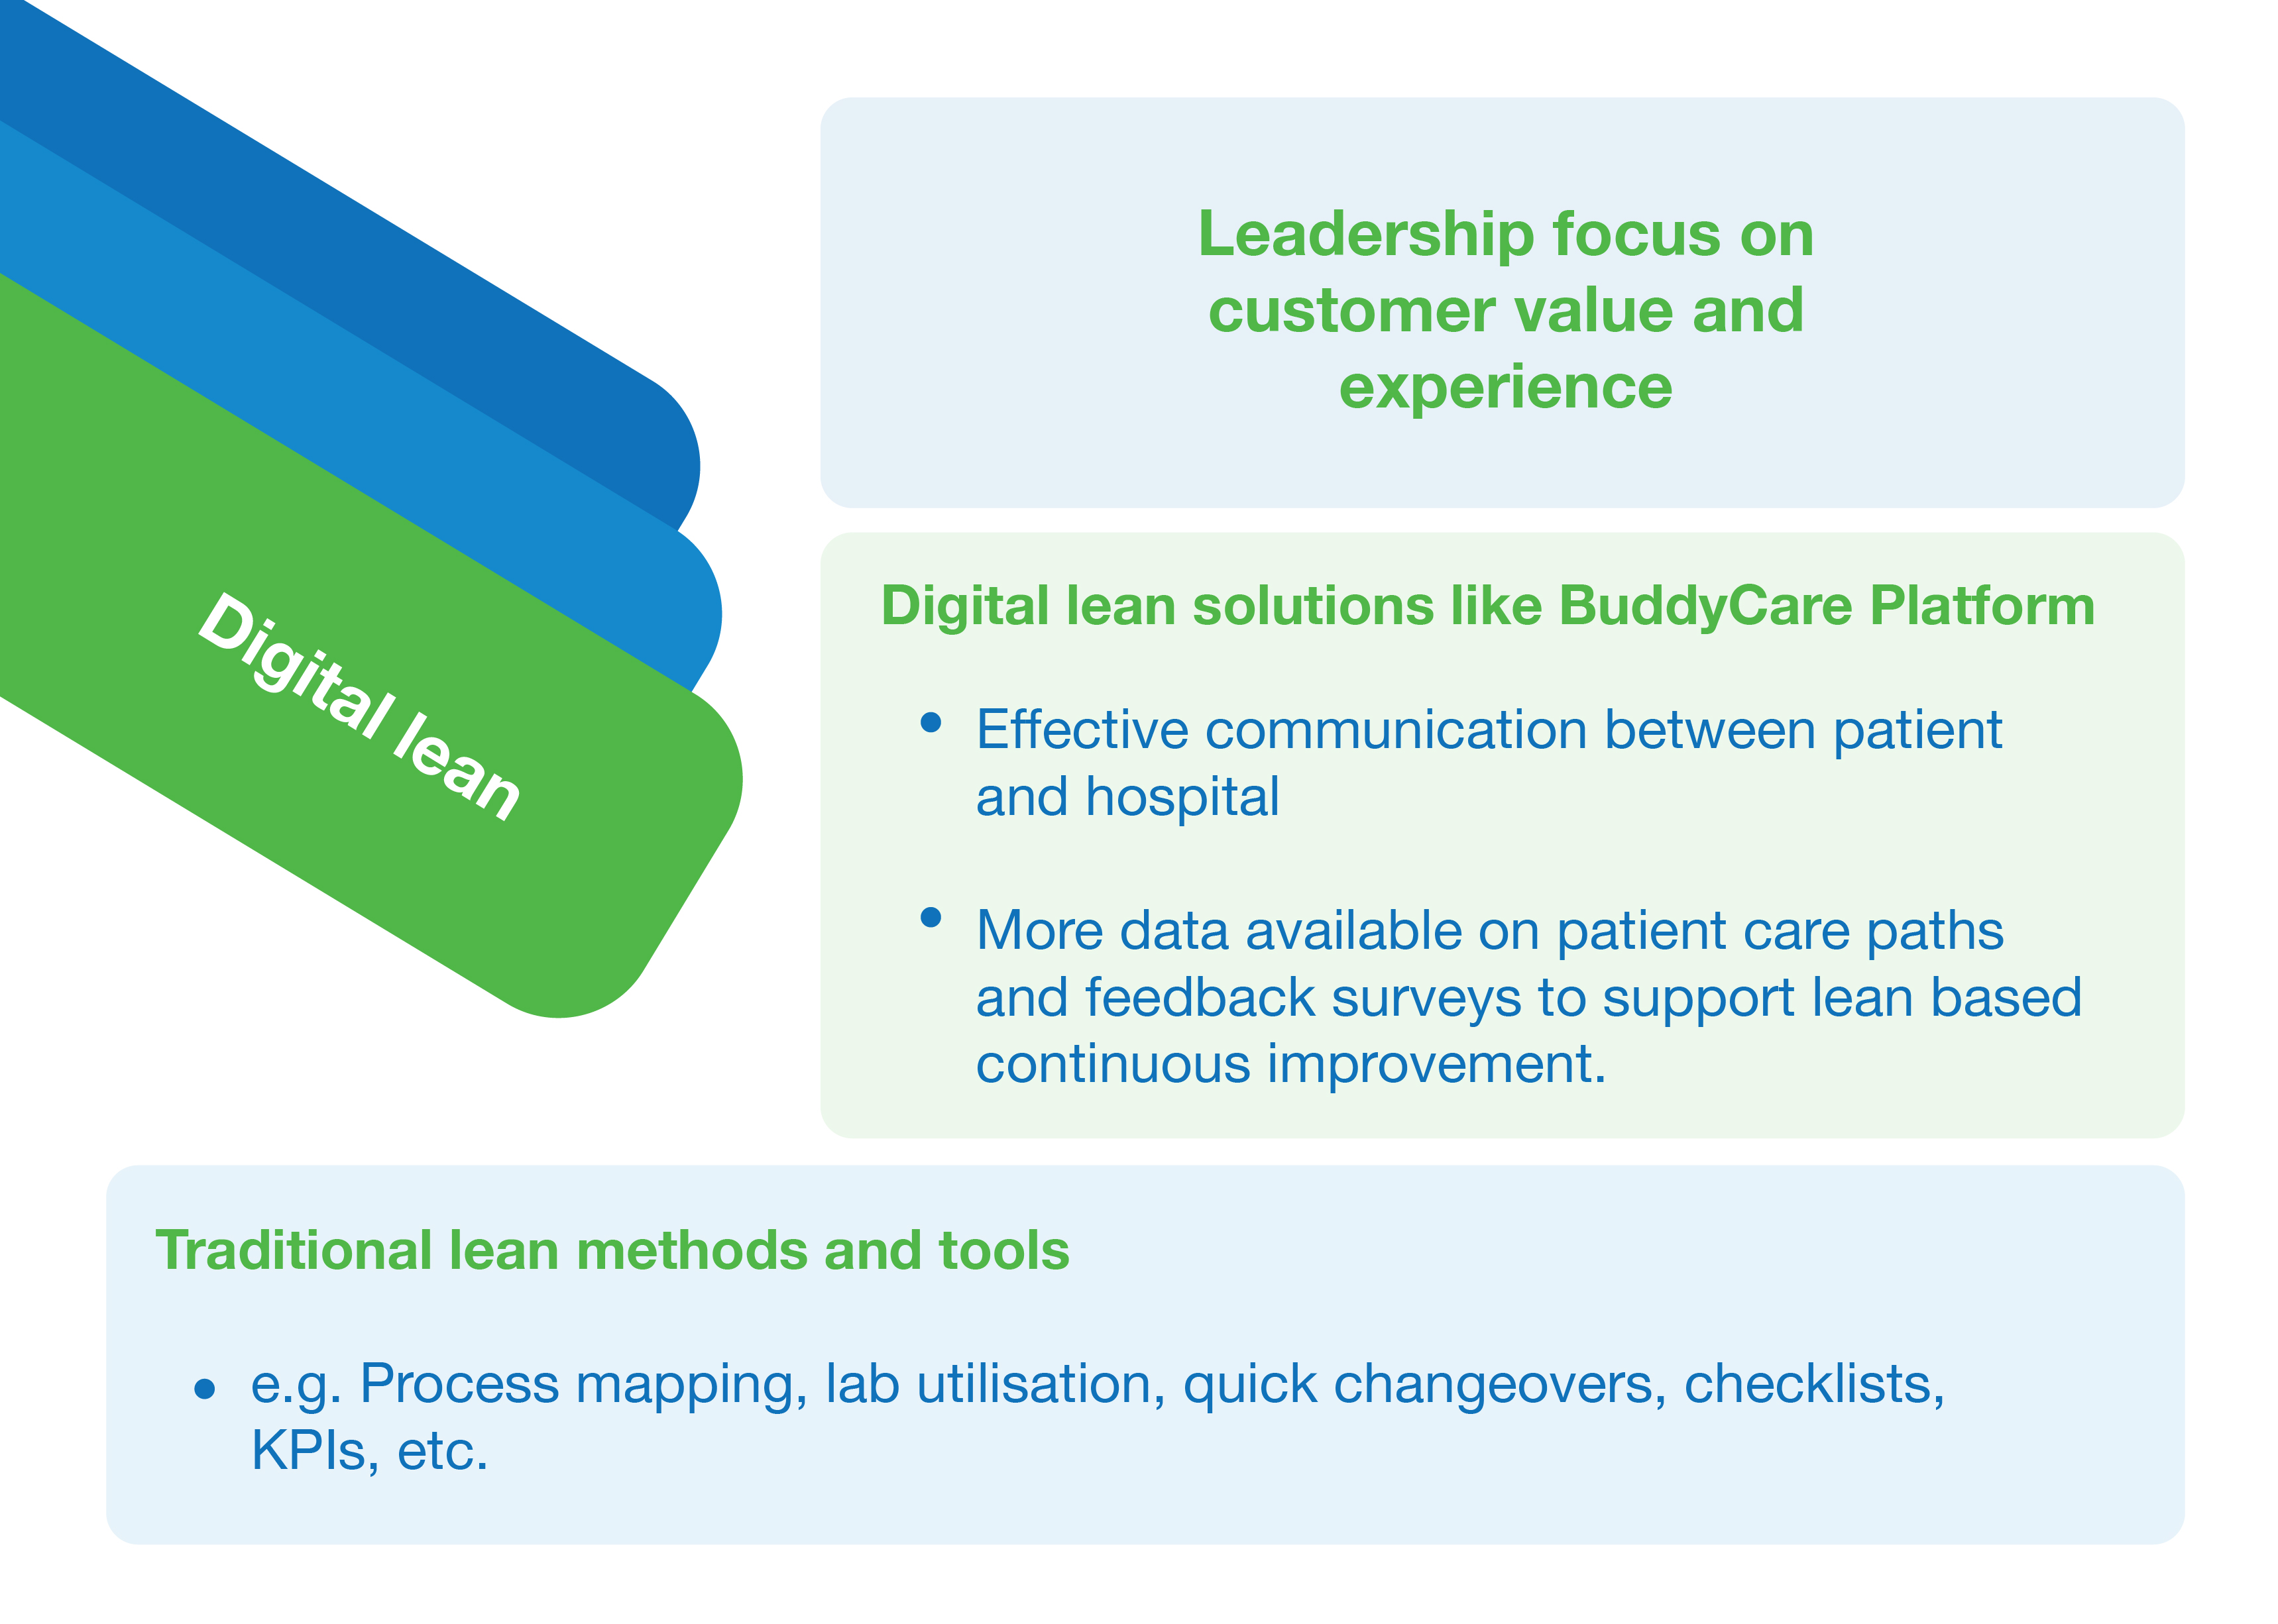 Graph explaining the concept of digital lean at hospitals